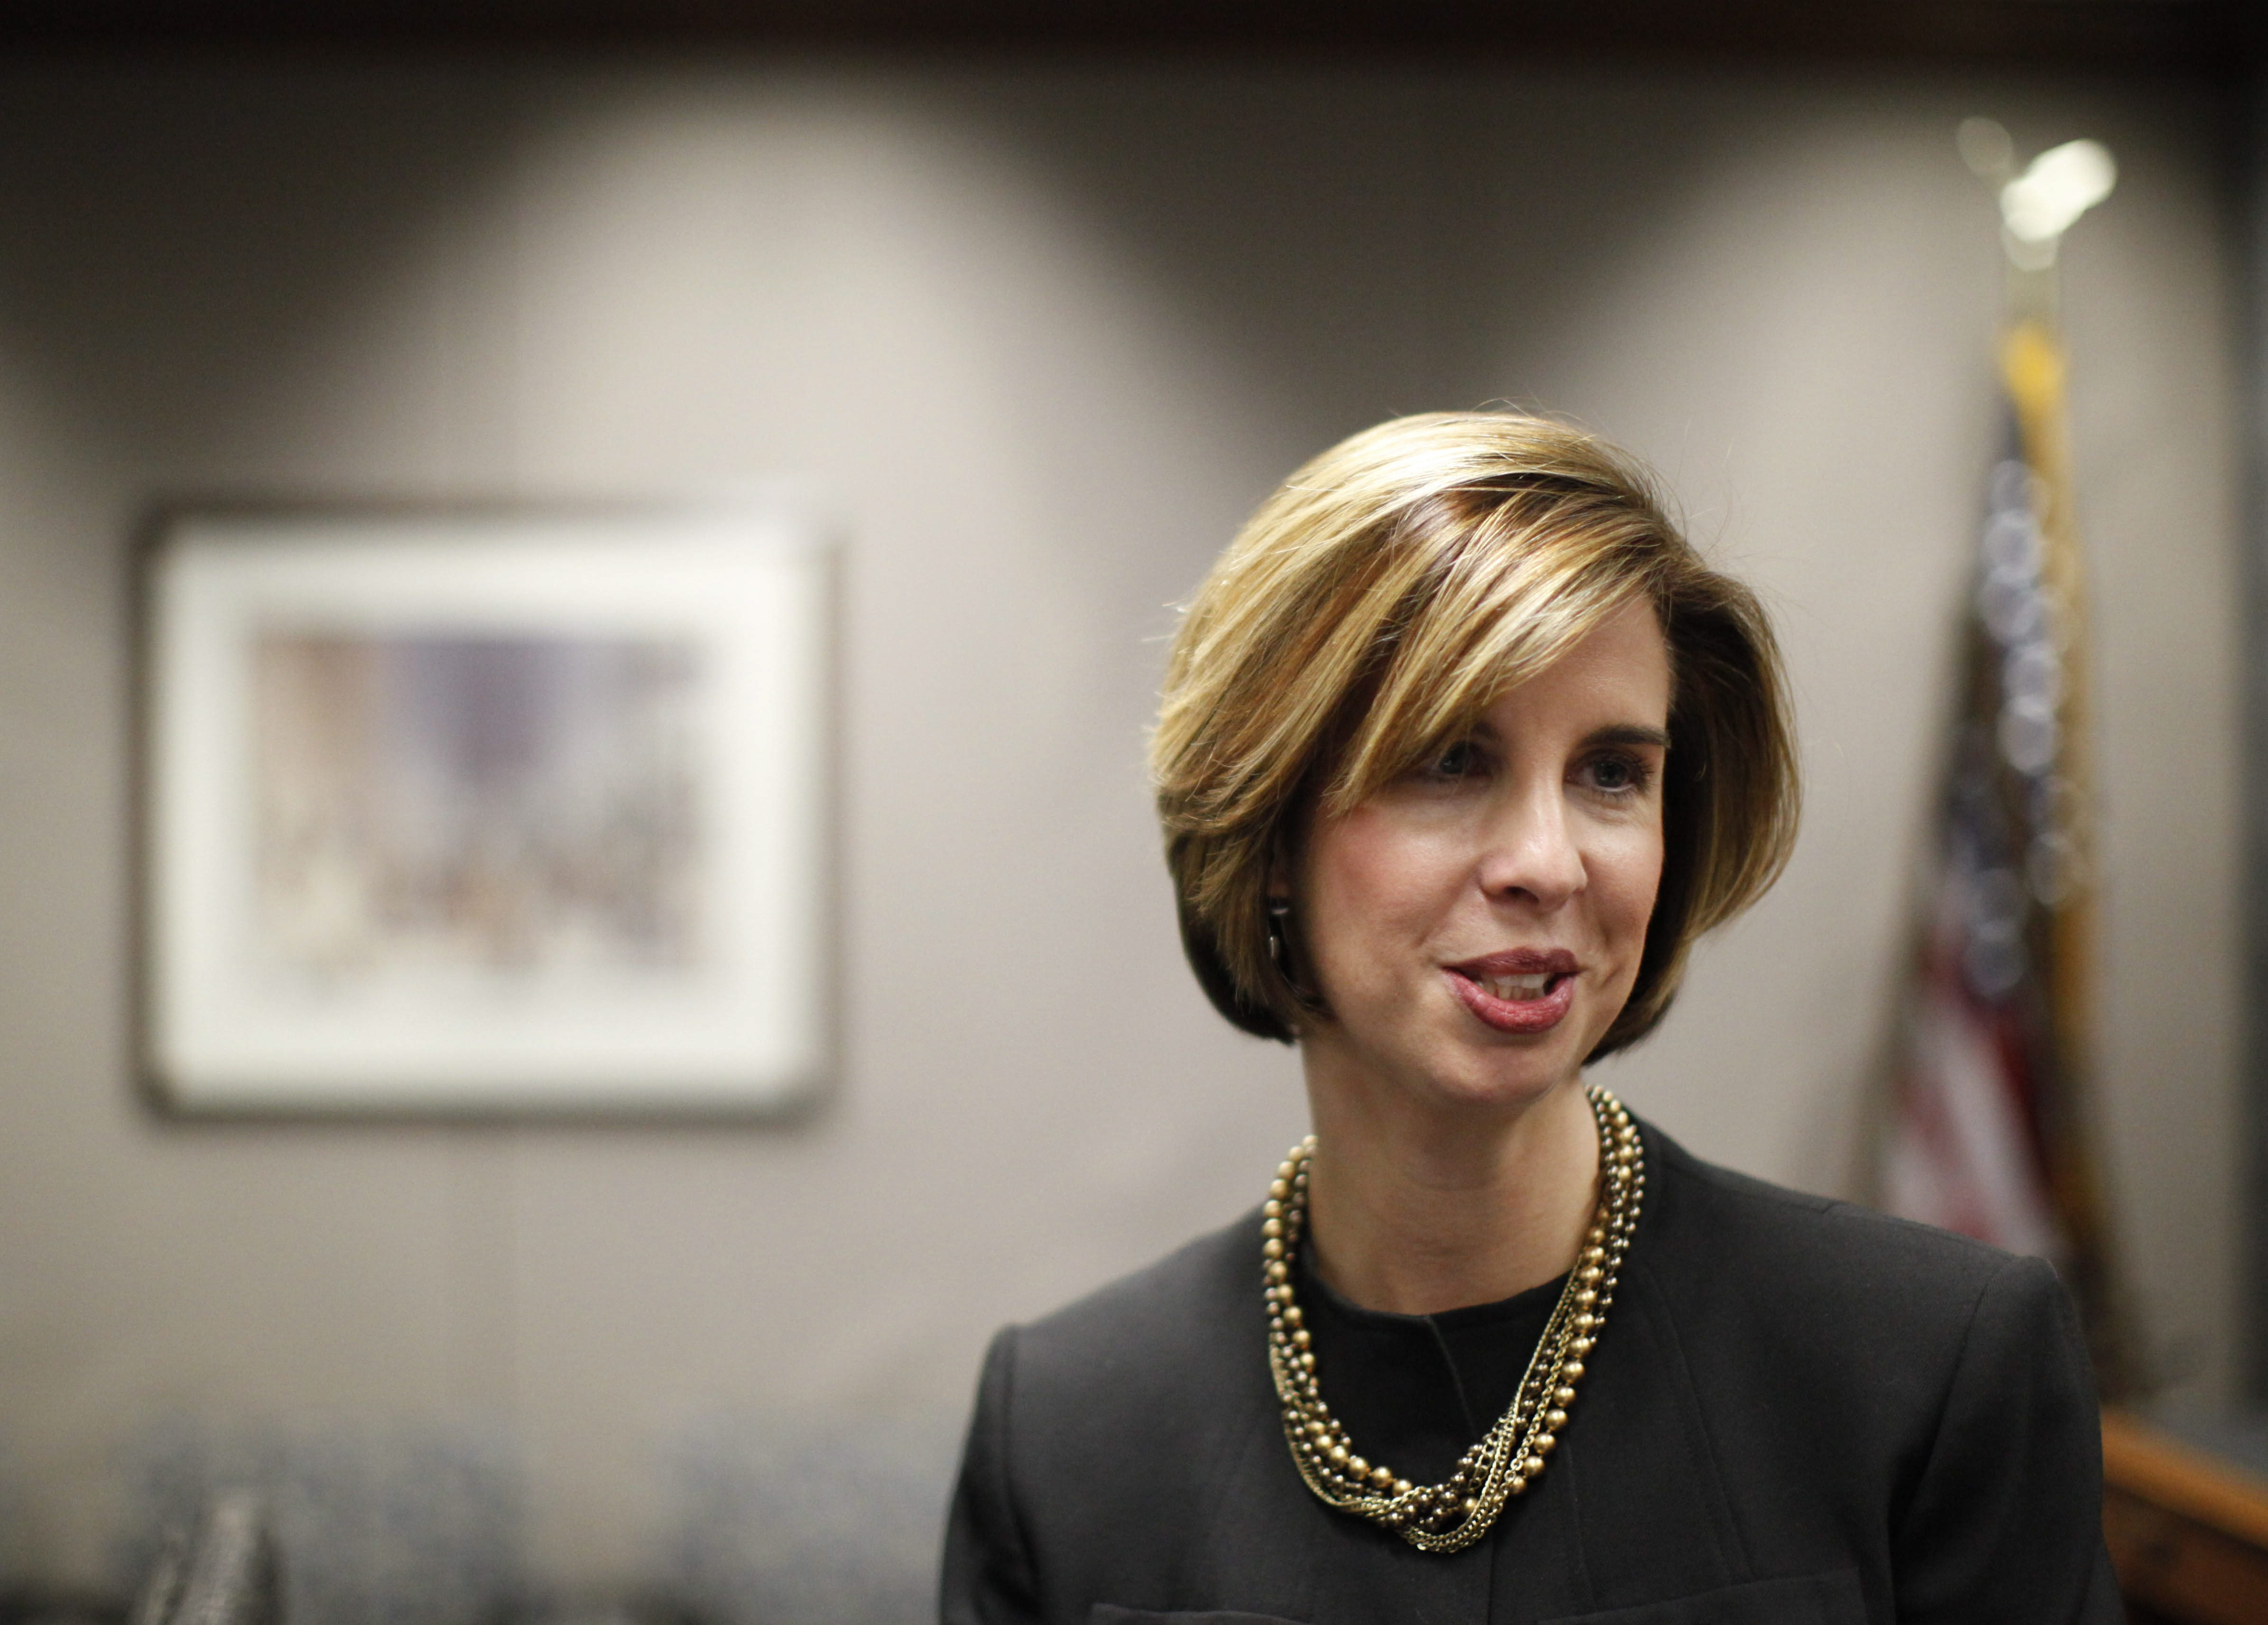 { FOR BRIAN MEYER STORY } Kimberley A. Minkel was named Executive Director of the NFTA, Tuesday morning, Dec. 28, 2010.  {Photo by Derek Gee / Buffalo News}